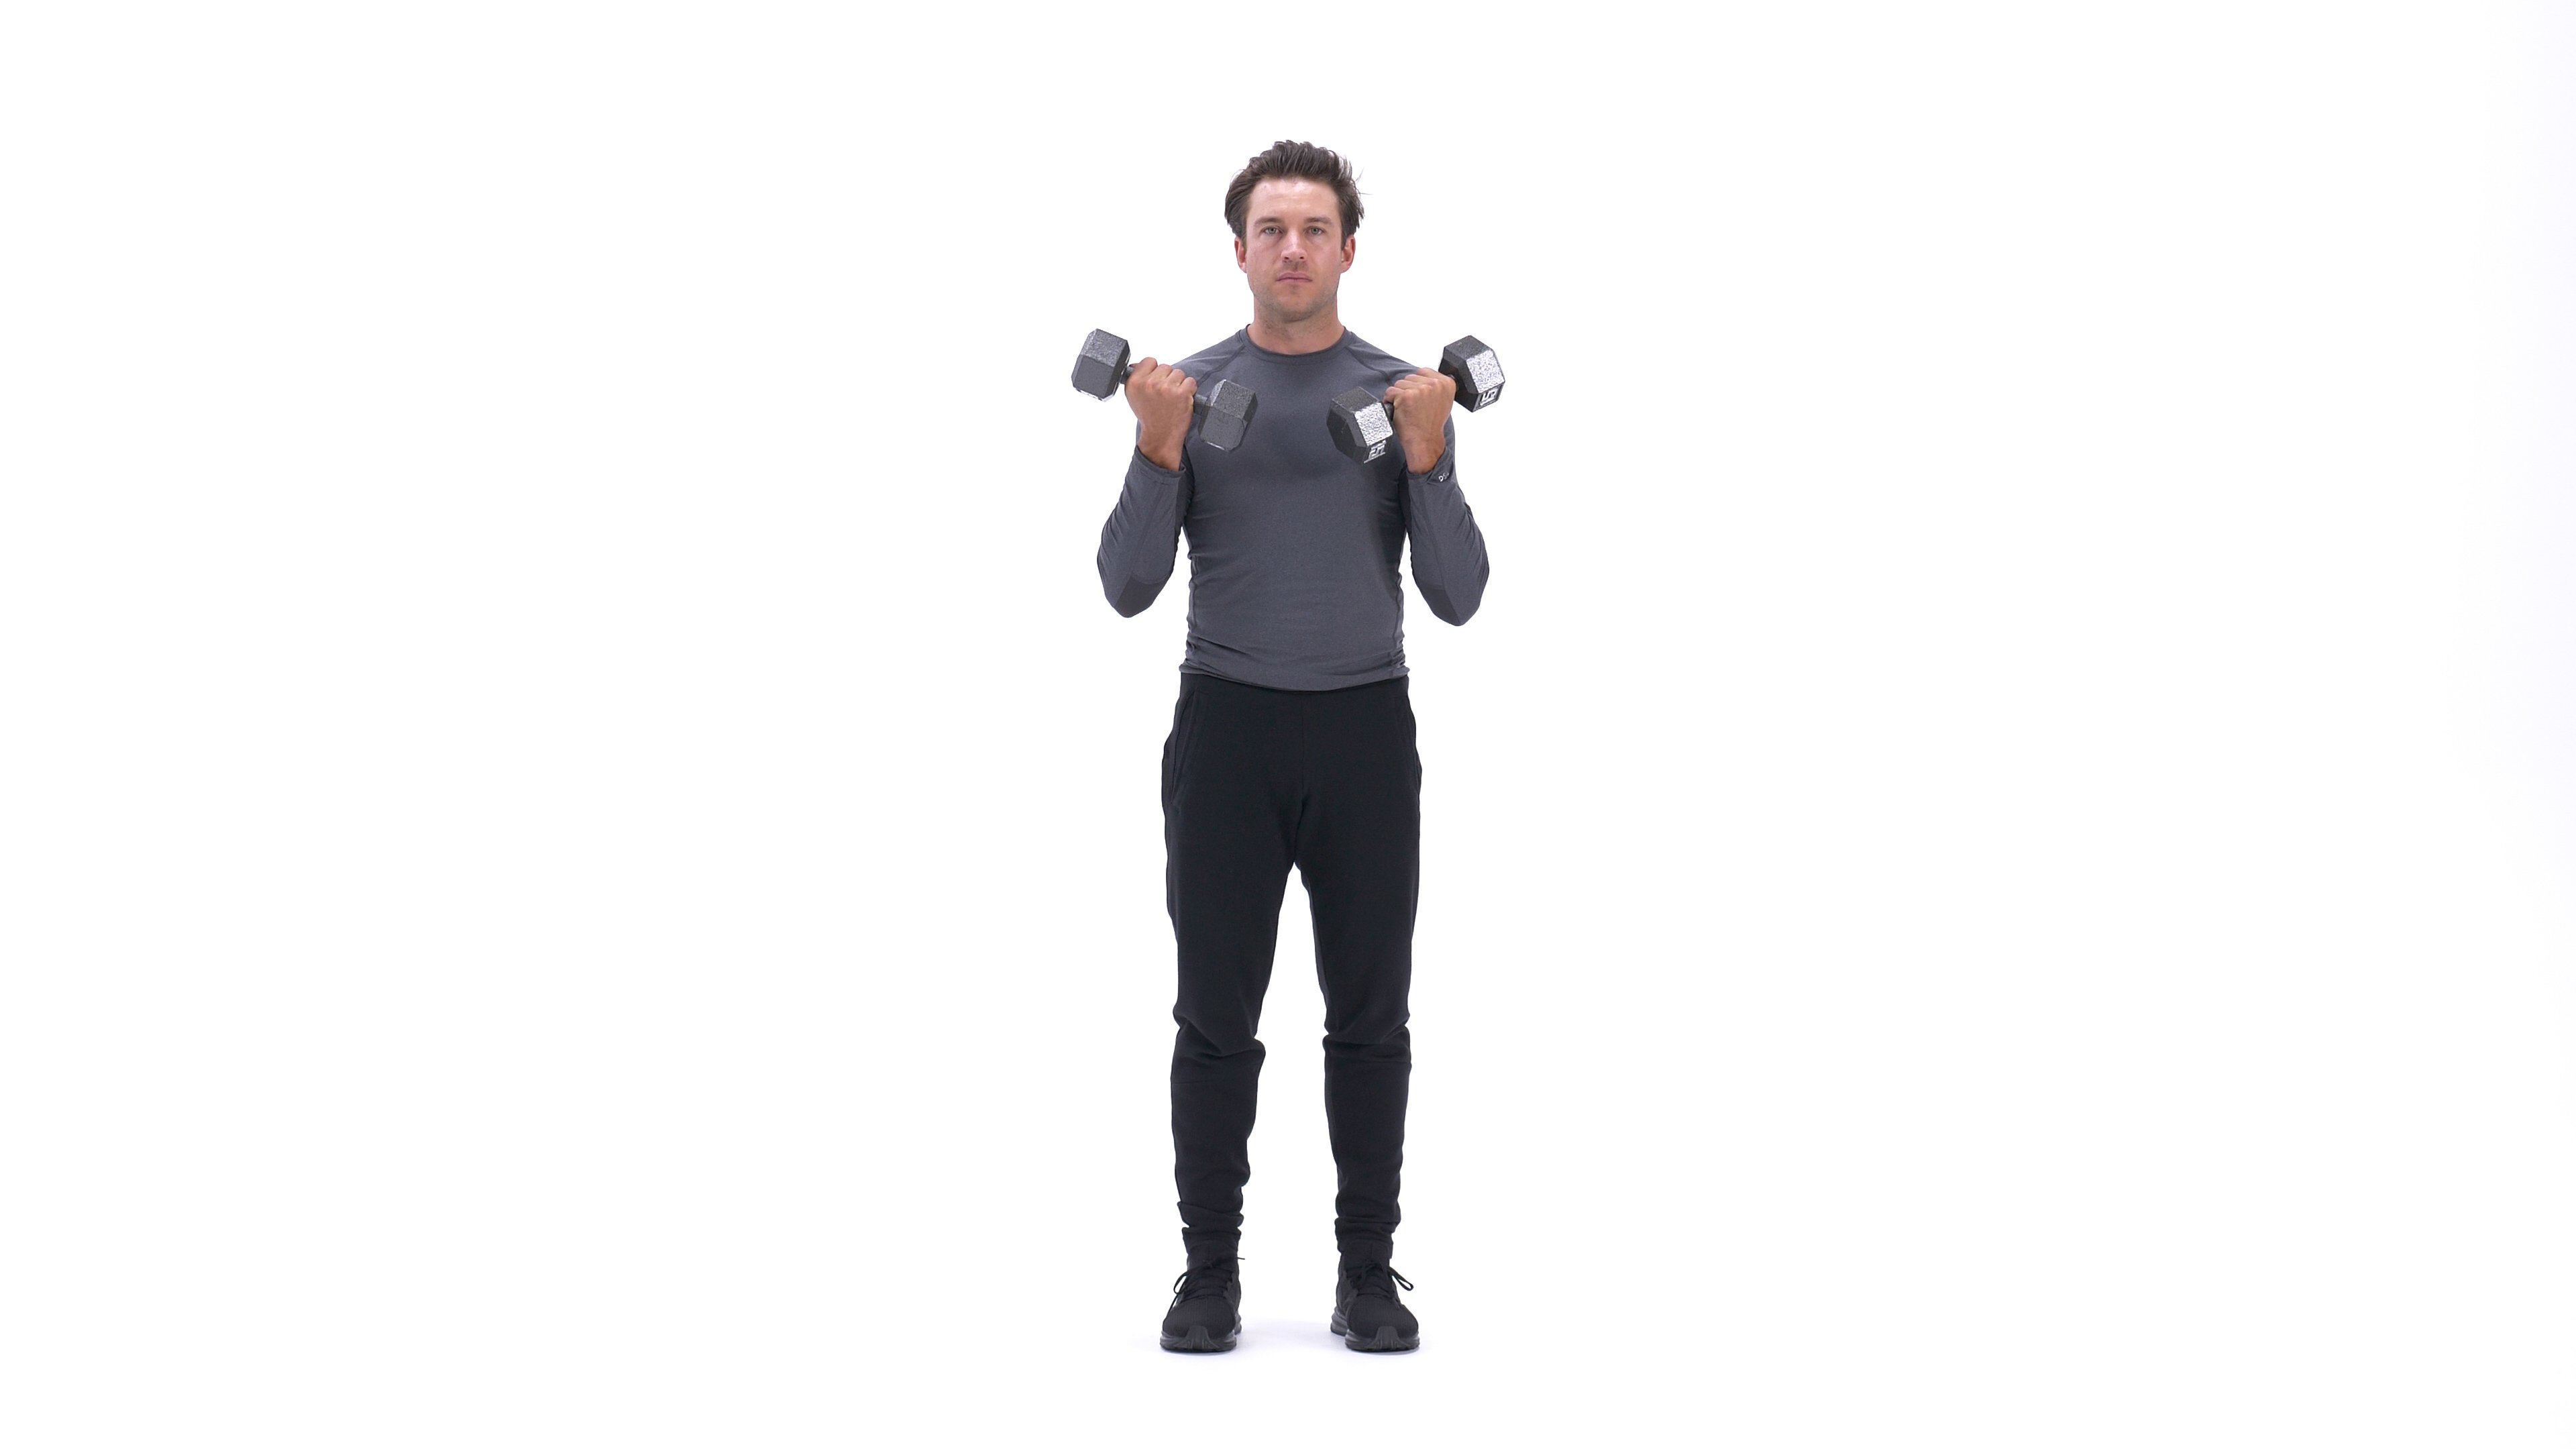 Dumbbell Bicep Curl image